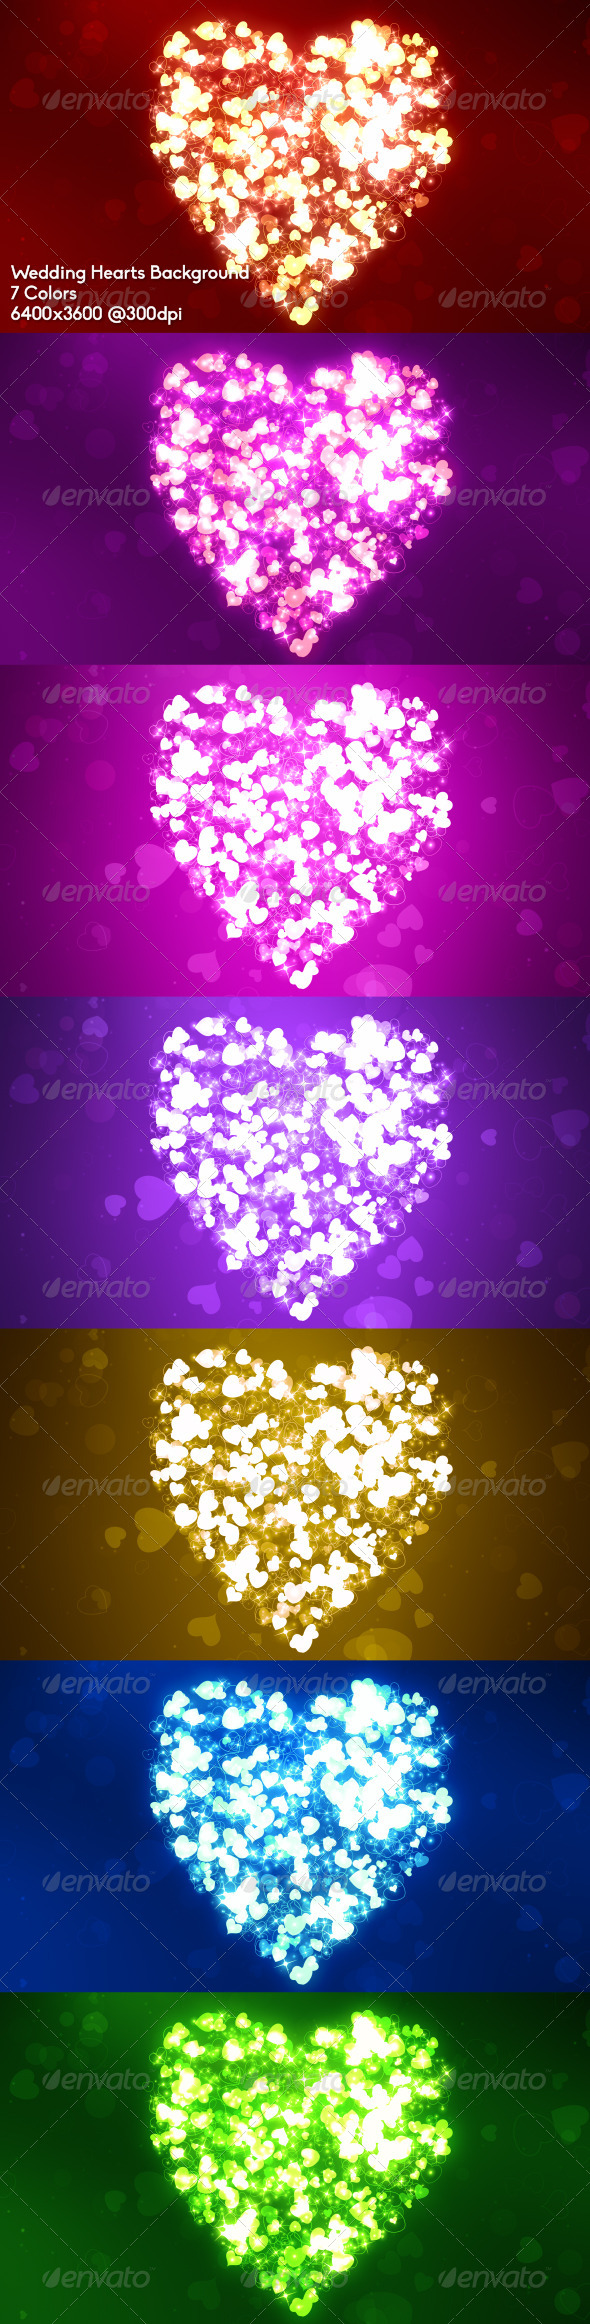 GraphicRiver Wedding Hearts Background 6697045